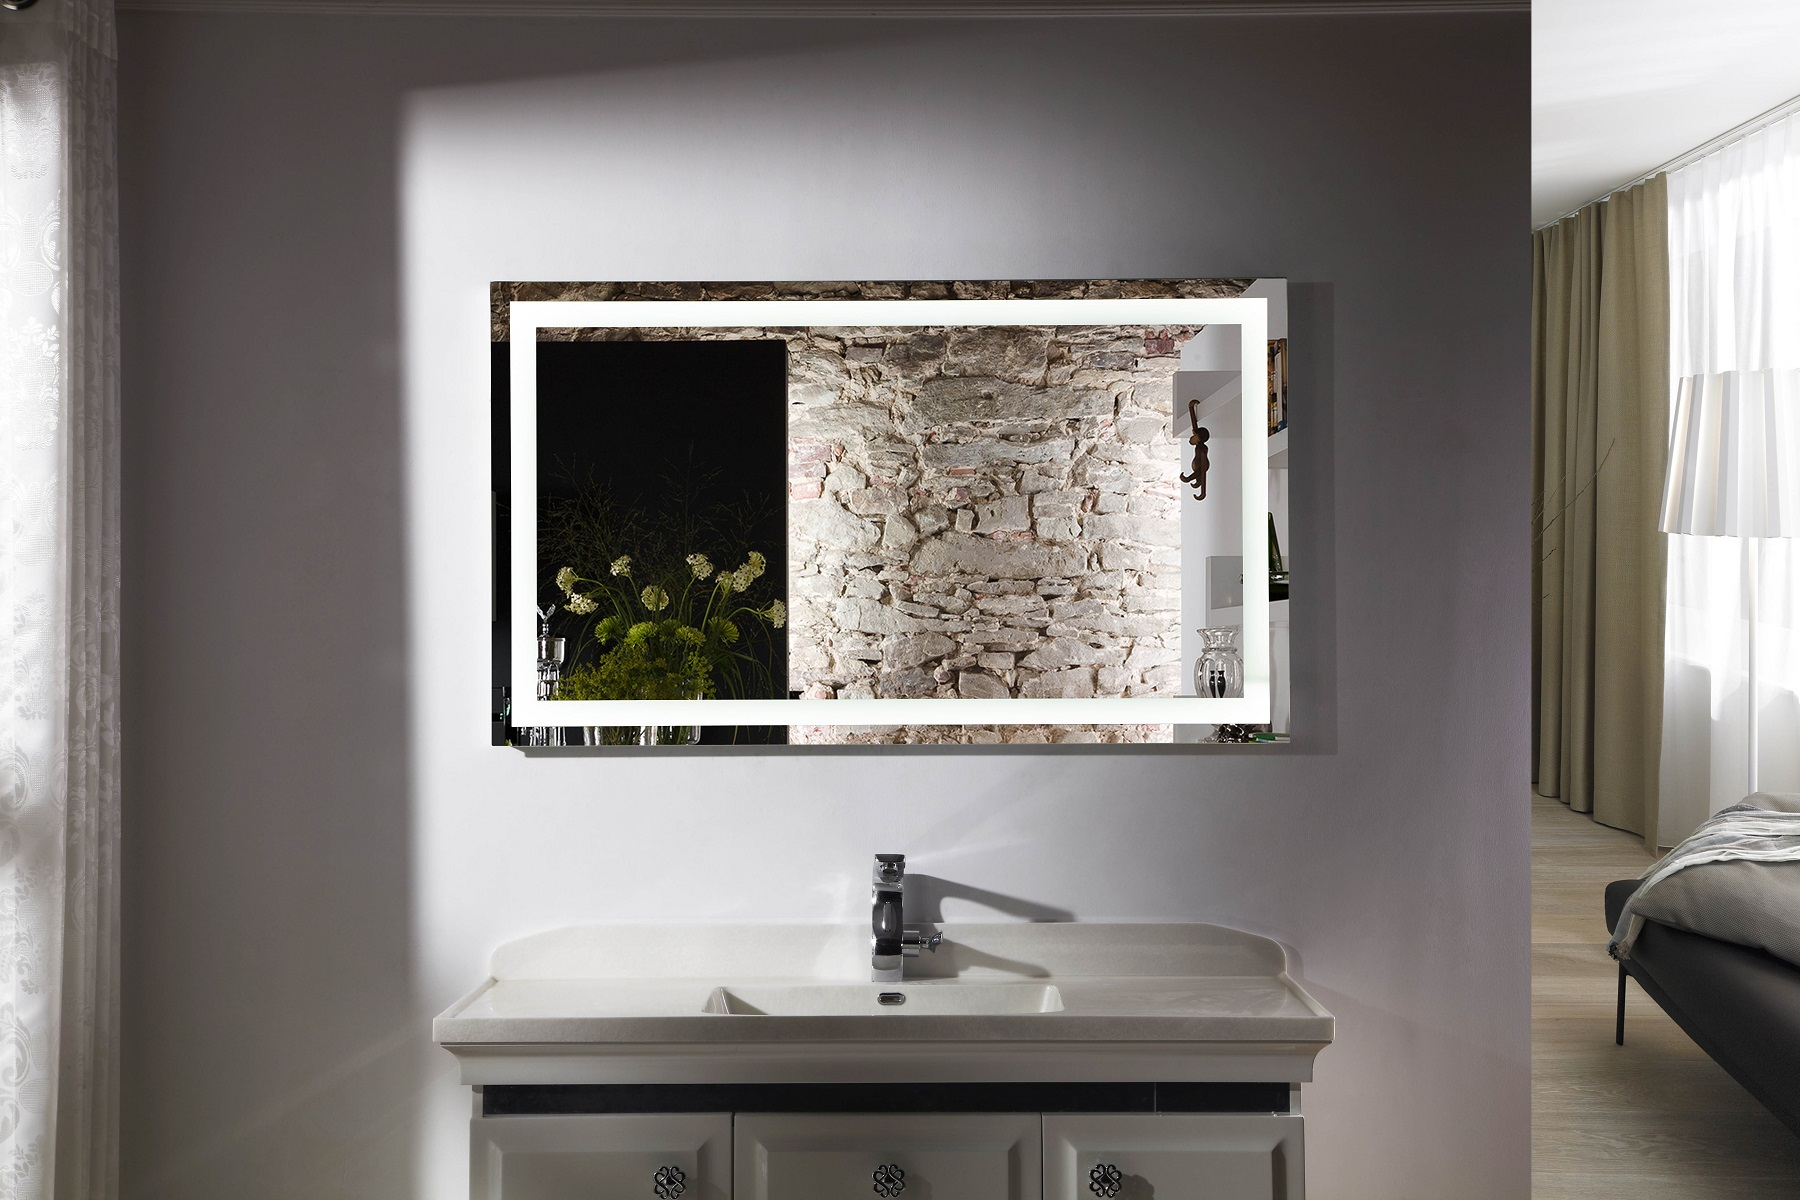 Bathroom mirrors with led lights - Click To See Larger Image